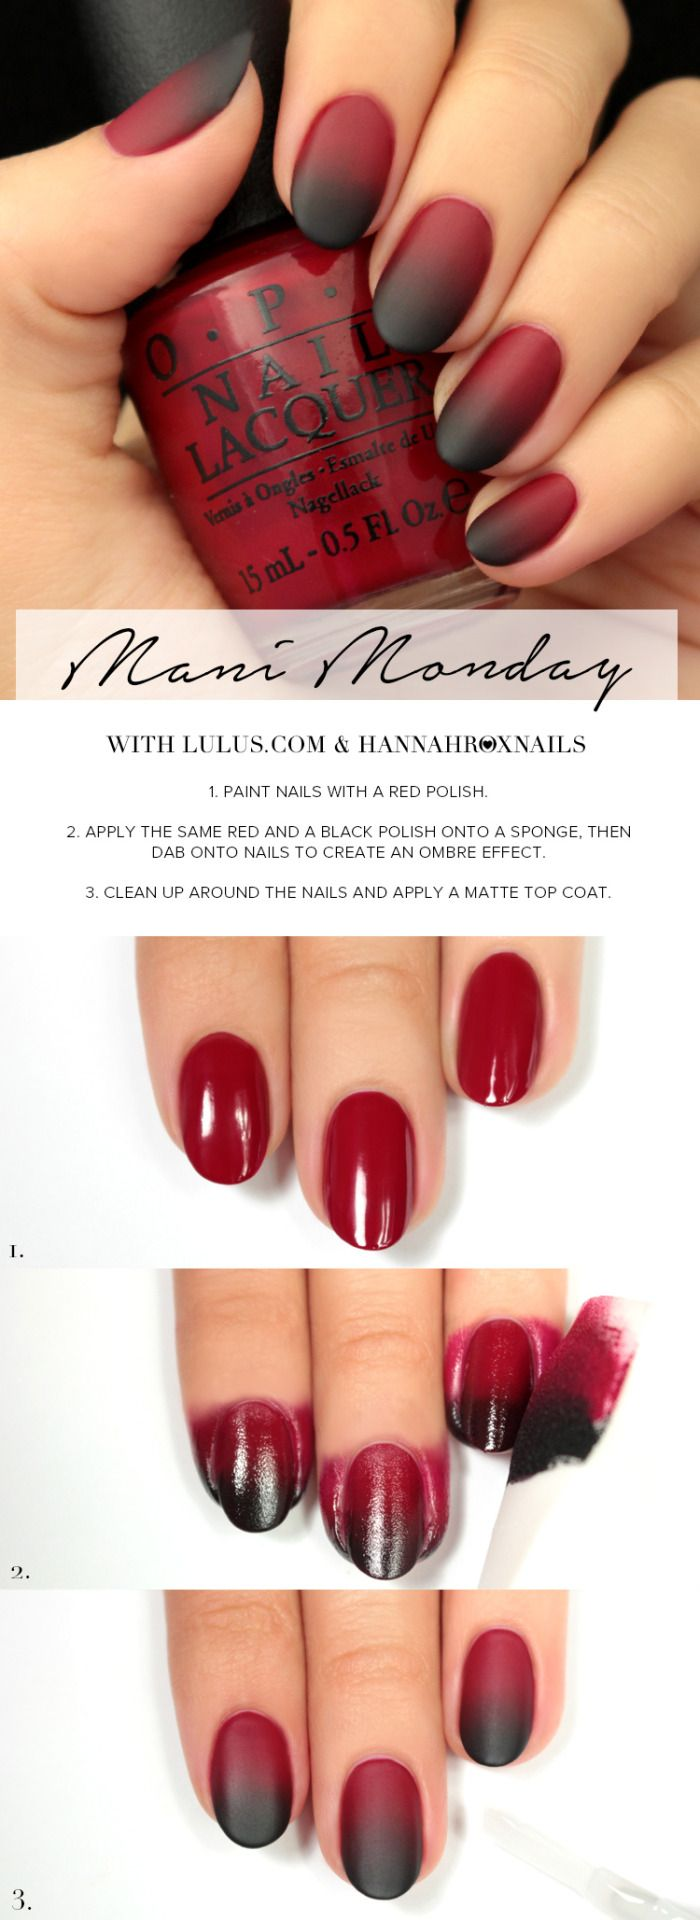 Pink glittery emoji nail art 183 how to paint a glitter - So We Ve Decided To Get In The Spooky Spirit With A Vamp Y Matte Mani In This Week S Black And Red Ombre Nail Tutorial By Carefully Blending Opi S